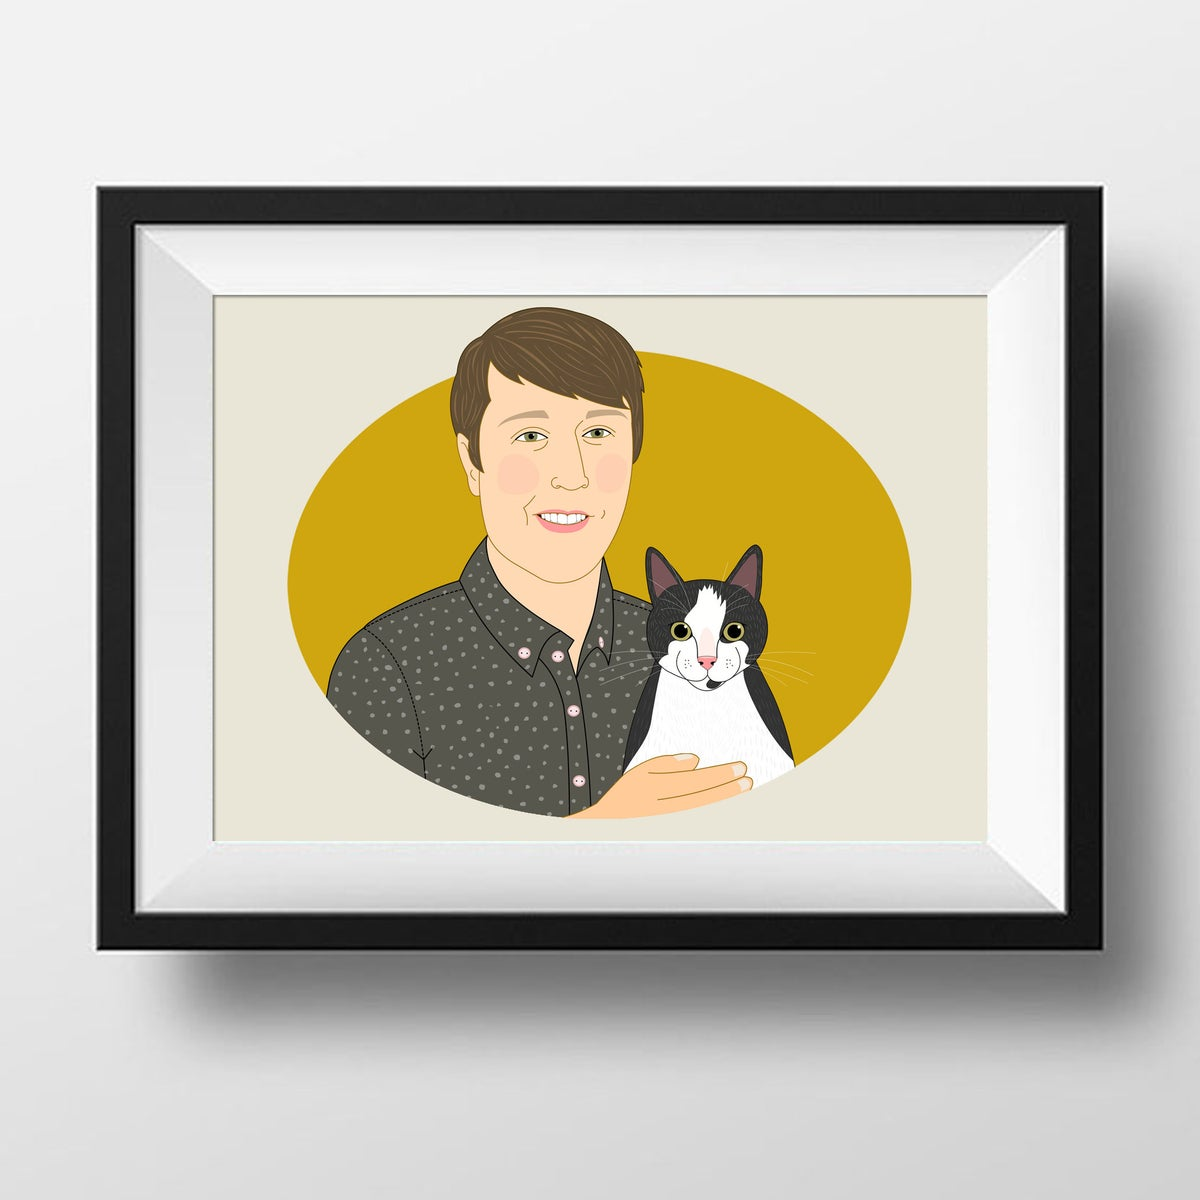 Image of Individual Portrait with pet.